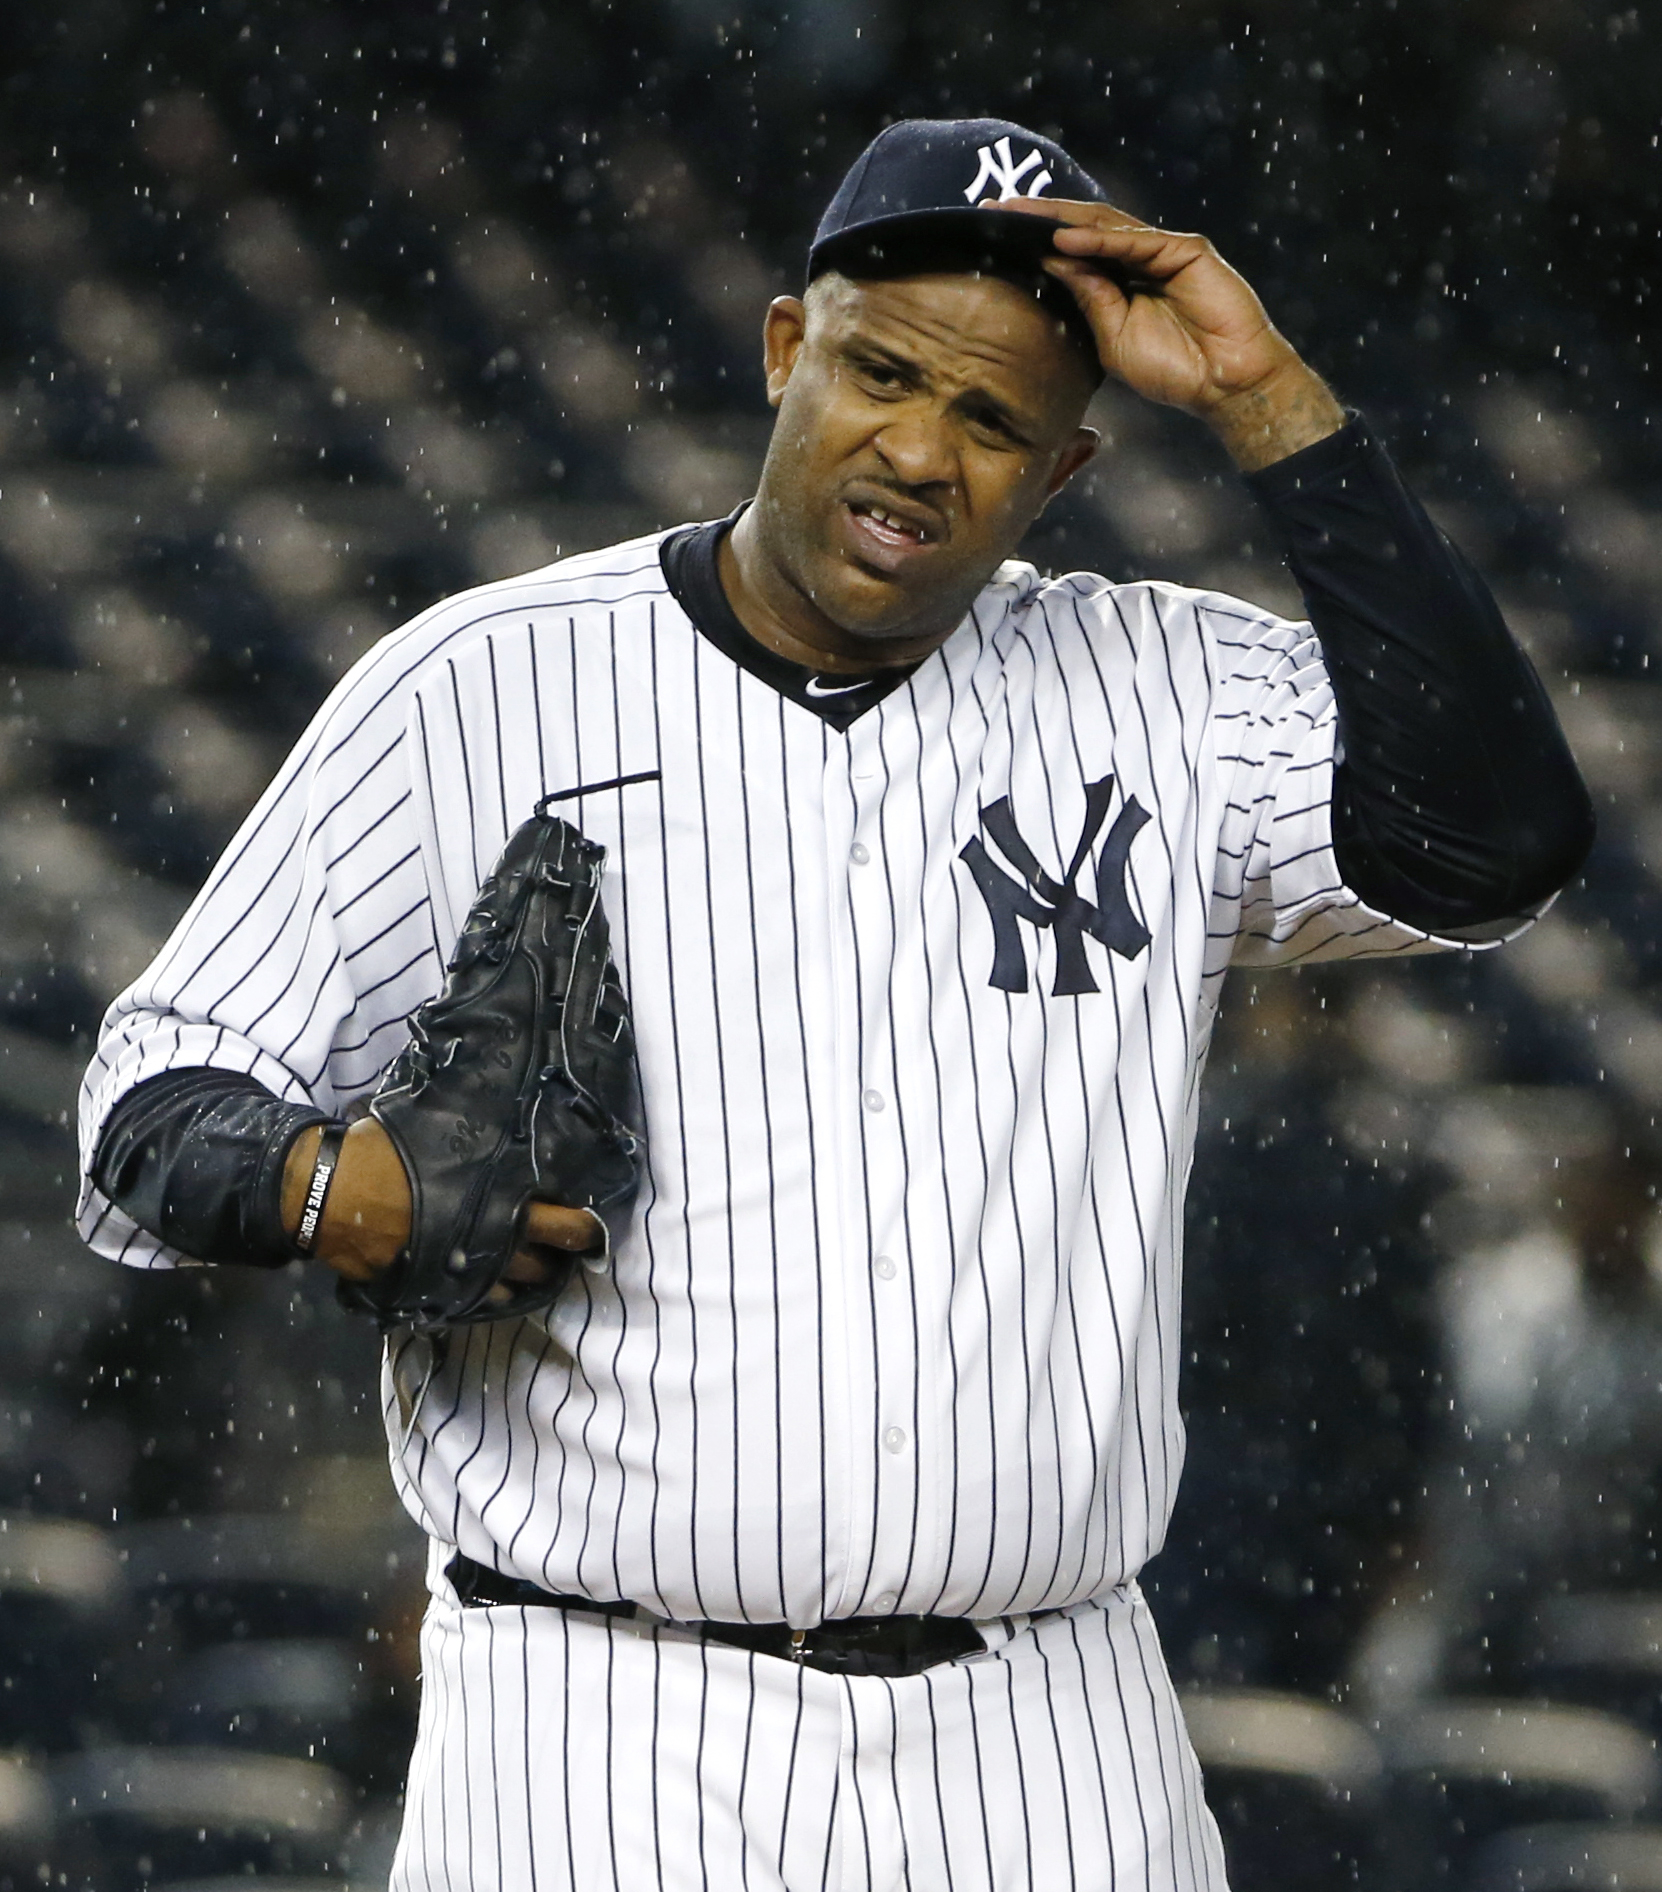 New York Yankees starting pitcher CC Sabathia (52) struggles with his cap in the rain during the first inning of a baseball game against the Boston Red Sox in New York, Thursday, Oct. 1, 2015.   (AP Photo/Kathy Willens)